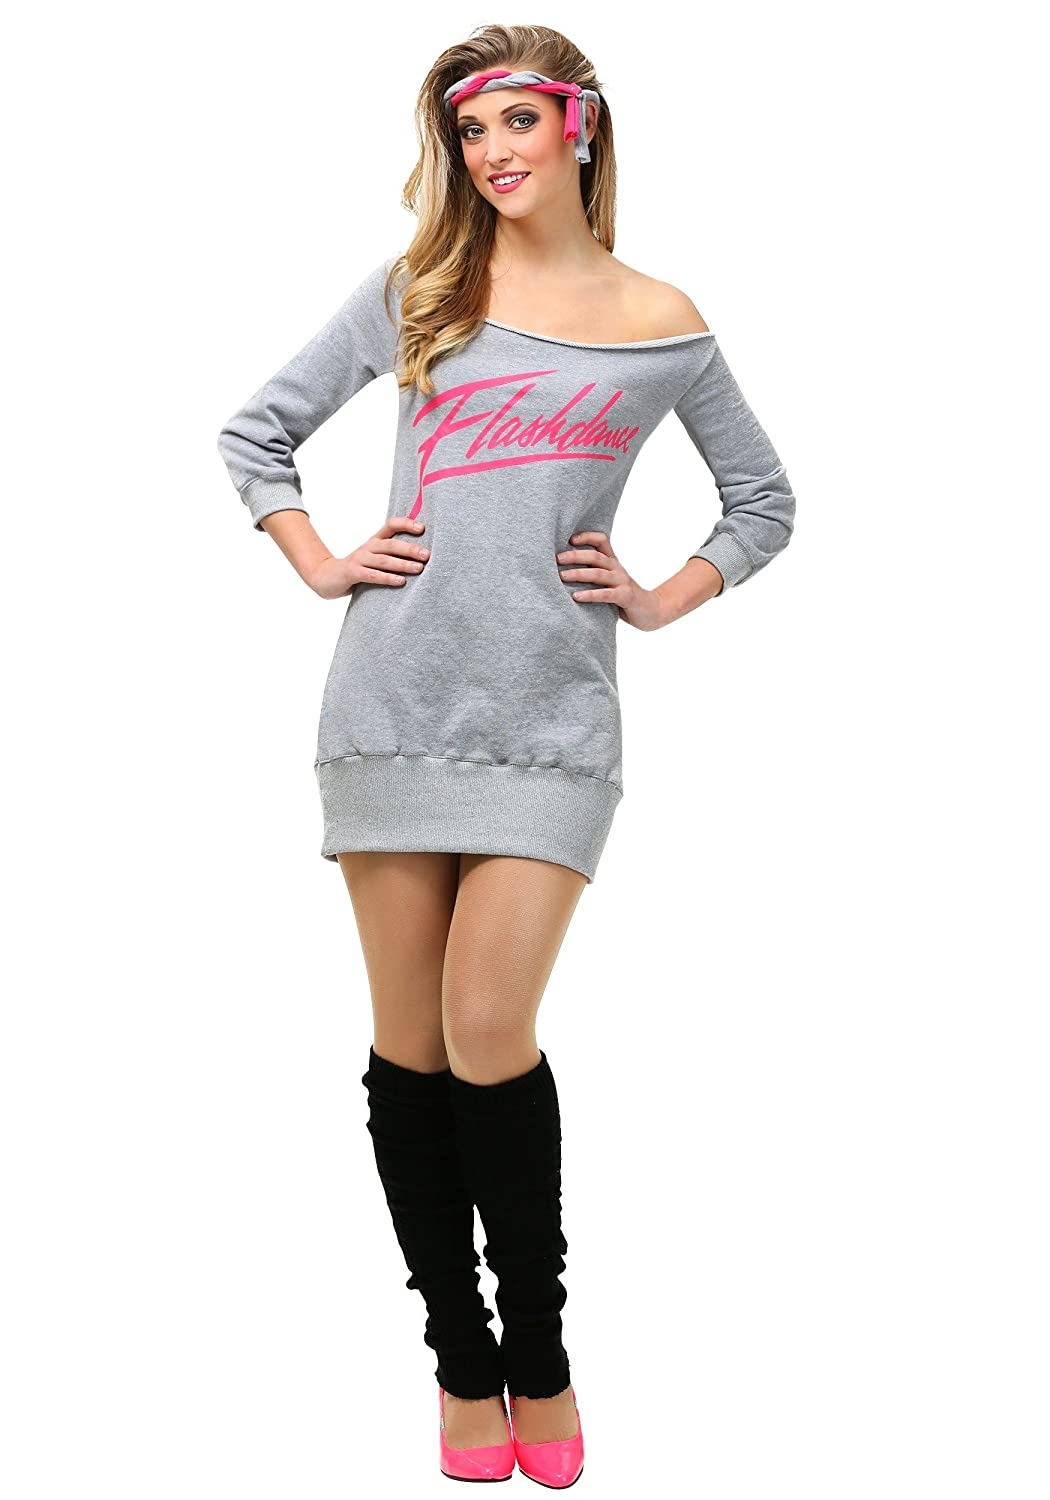 Womens Flashdance 80s Movie Costume in 5 Sizes